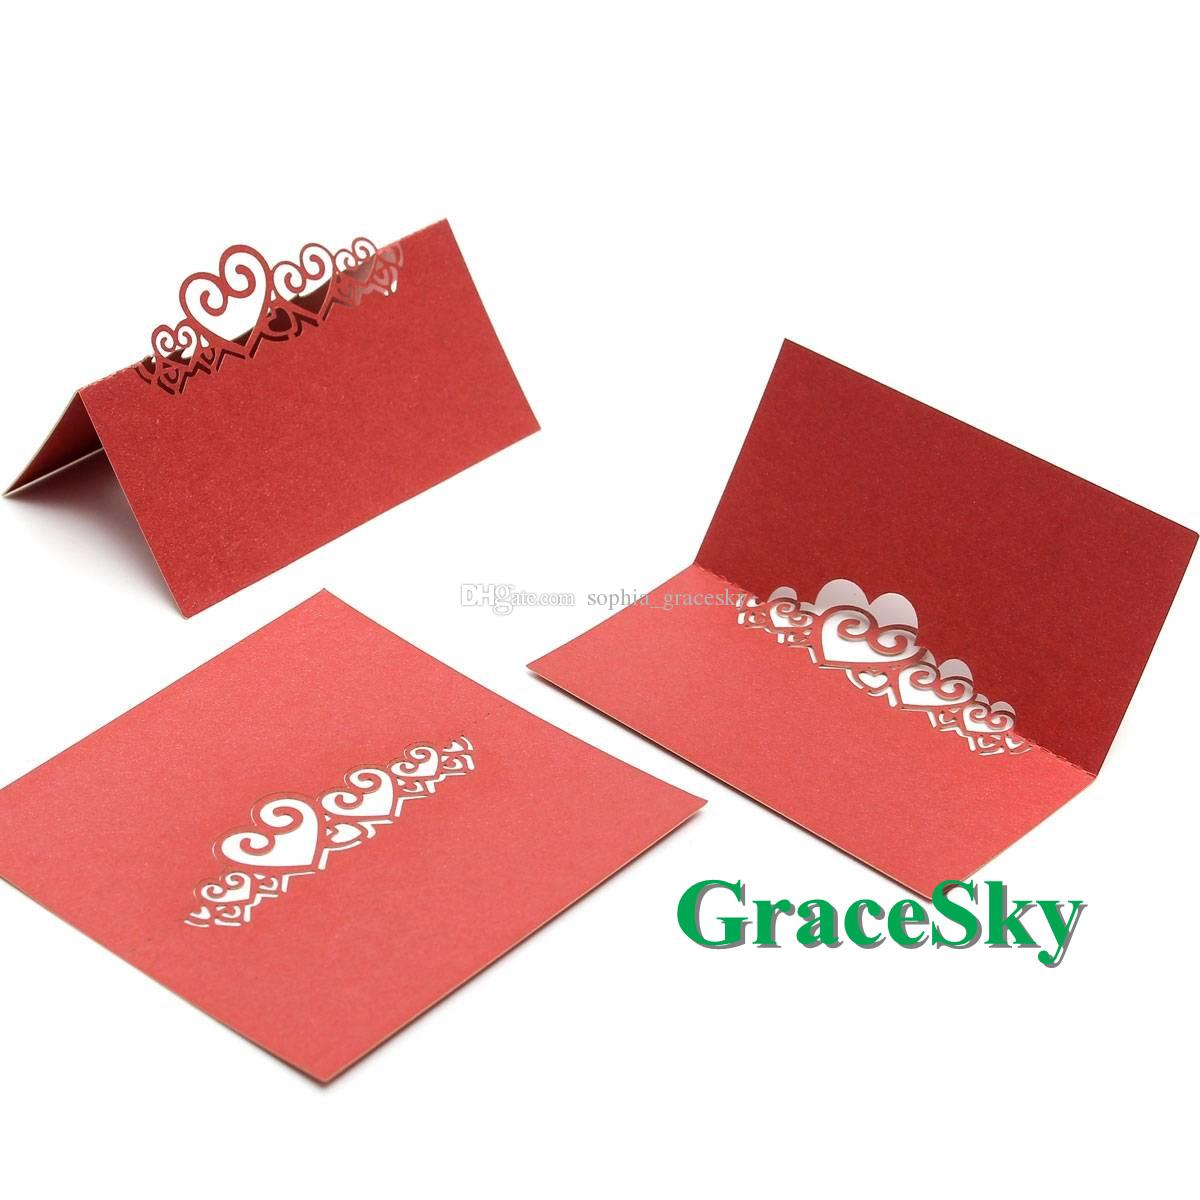 50pcs/lot Free Shipping Laser Cut wedding Multi-love heart shaped Paper Place Seat Name Invitation Card for Wedding Party Table Decorations